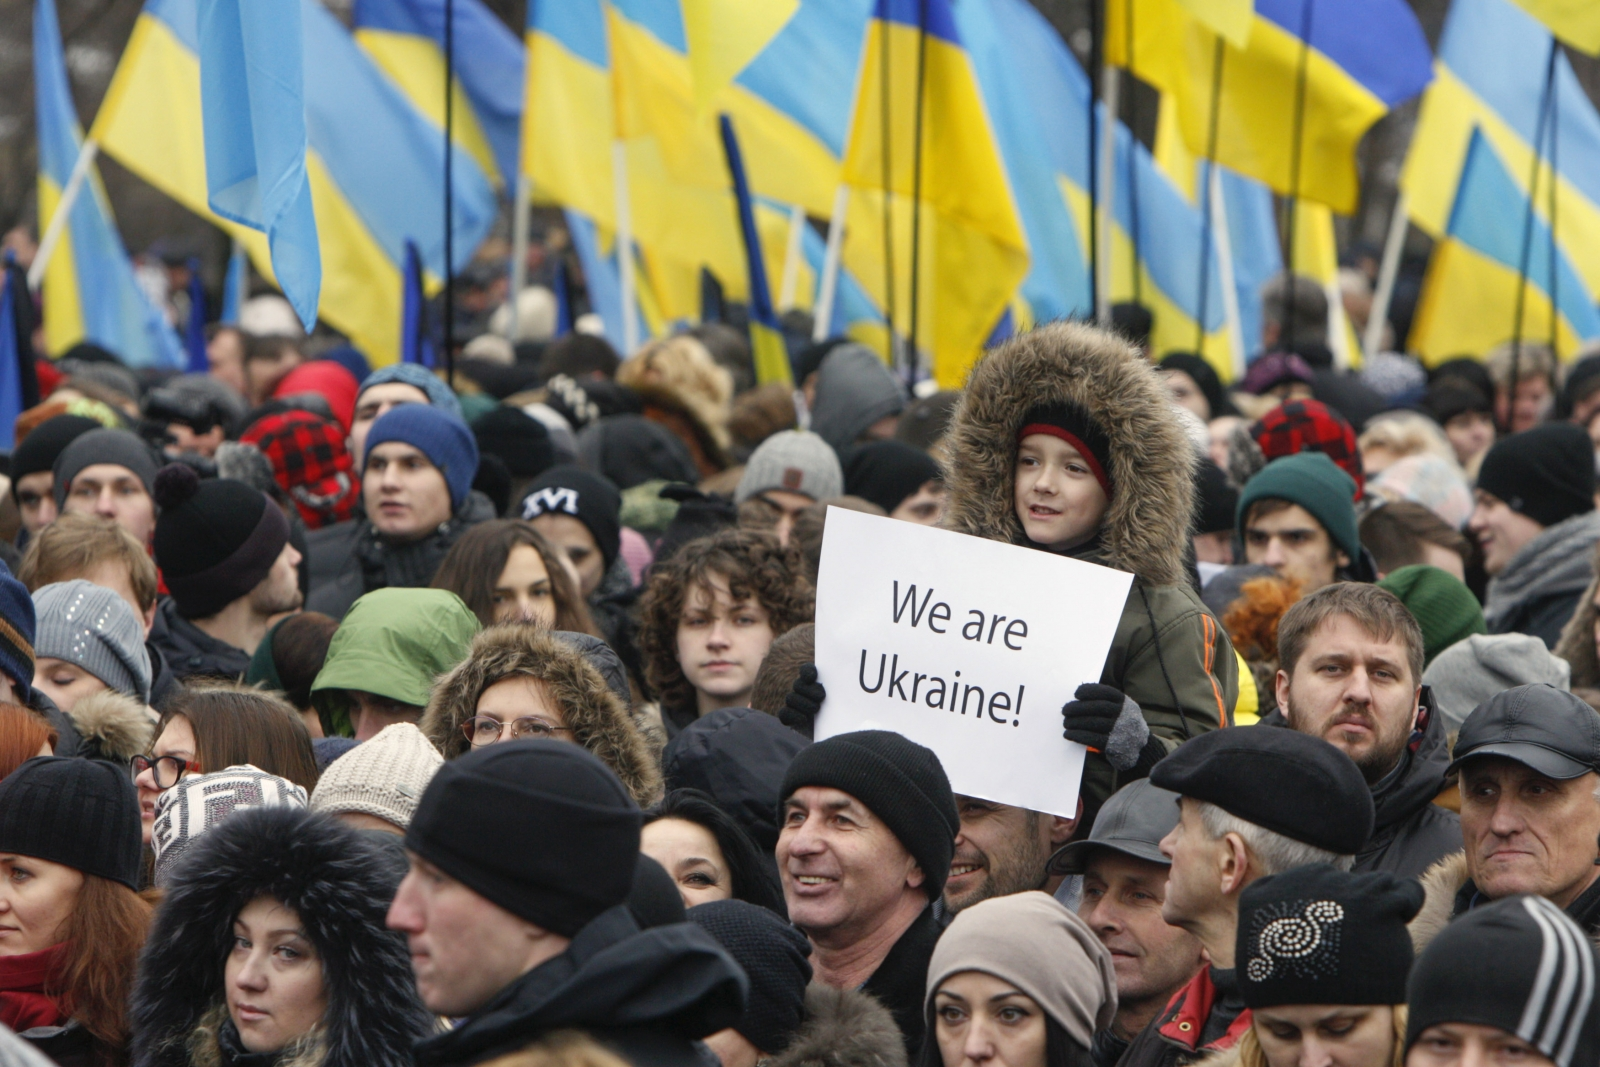 Ukraine conflict Russia sanctions protest